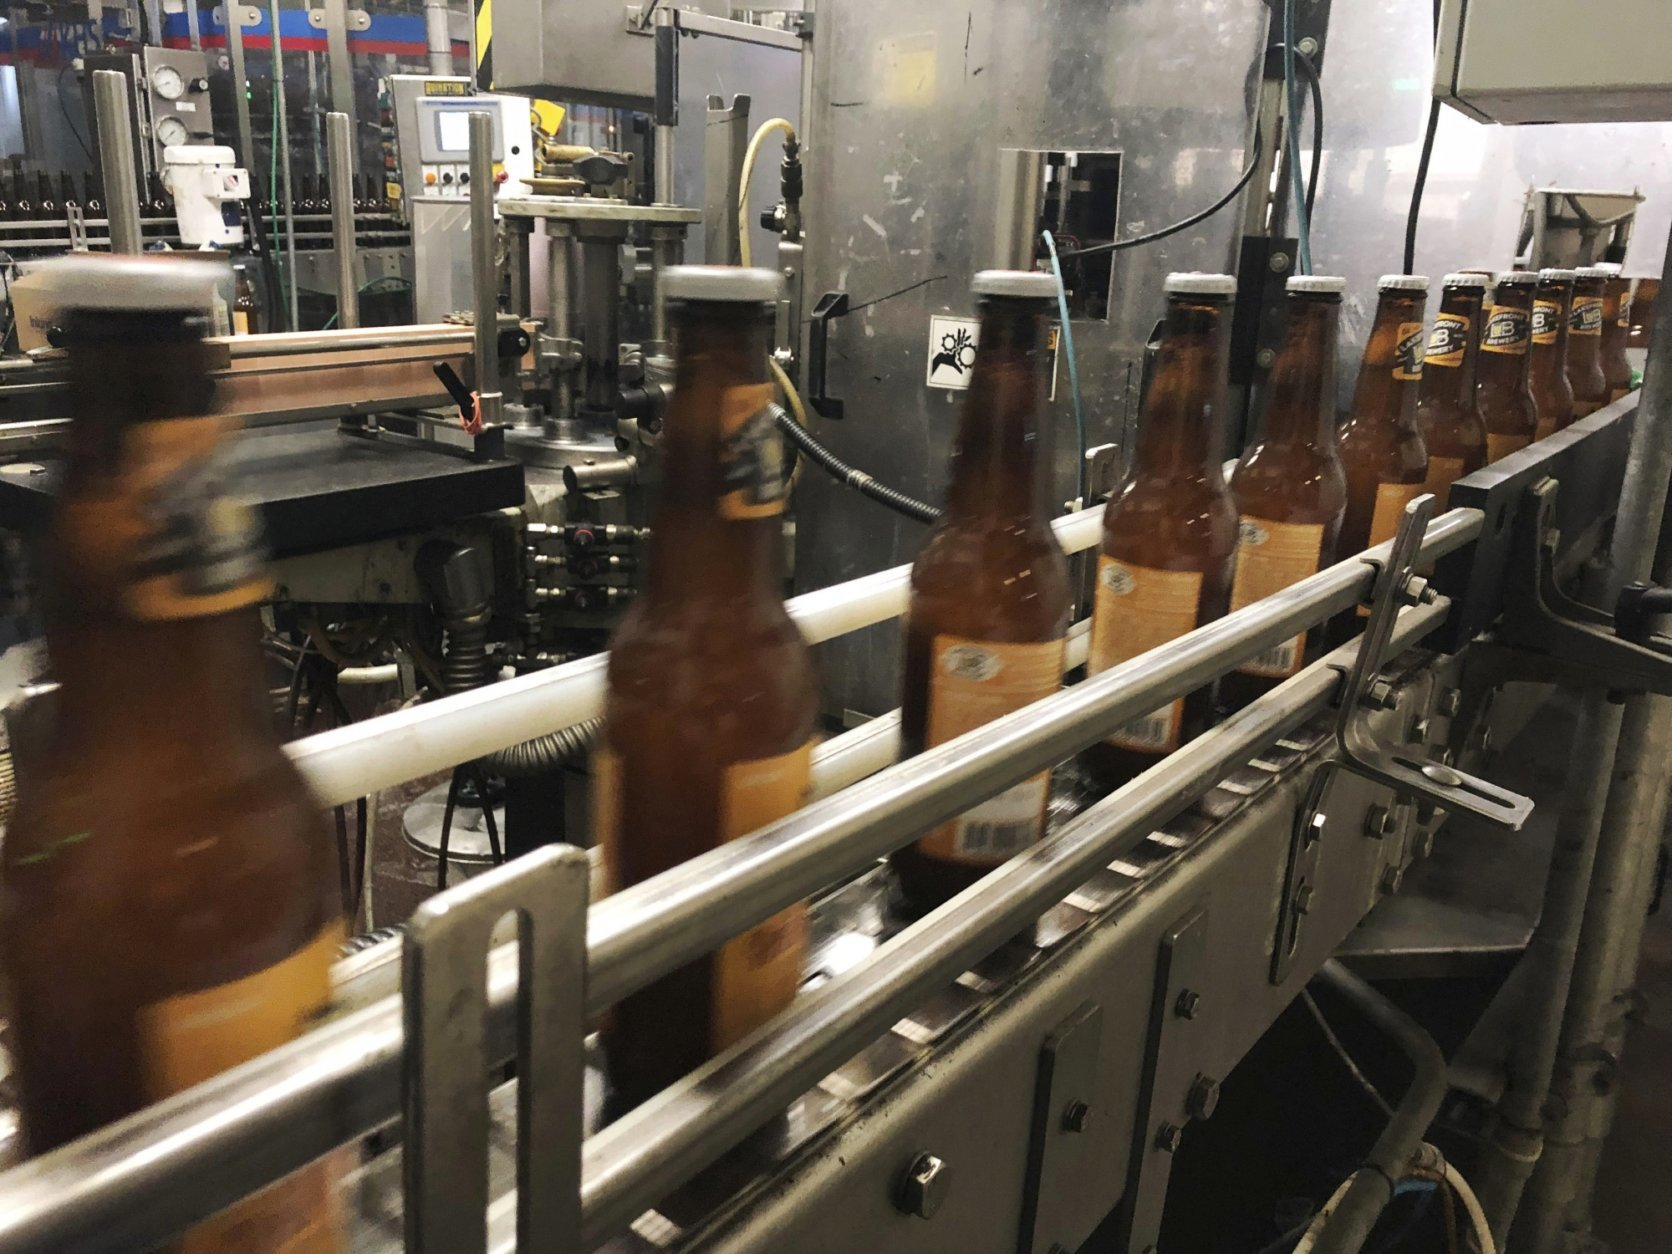 FILE- In this Jan. 14, 2019, file photo, bottles, freshly filled with beer, move on a belt at Lakefront Brewery in Milwaukee. Some craft breweries are postponing new beer releases or expansions because they need permission from a federal agency that isn't open. Such breweries tend to offer new seasonal and special brews frequently, and new beer labels need the Alcohol and Tobacco Tax and Trade Bureau's approval to be sold across state lines.(AP Photo/Carrie Antlfinger, File)